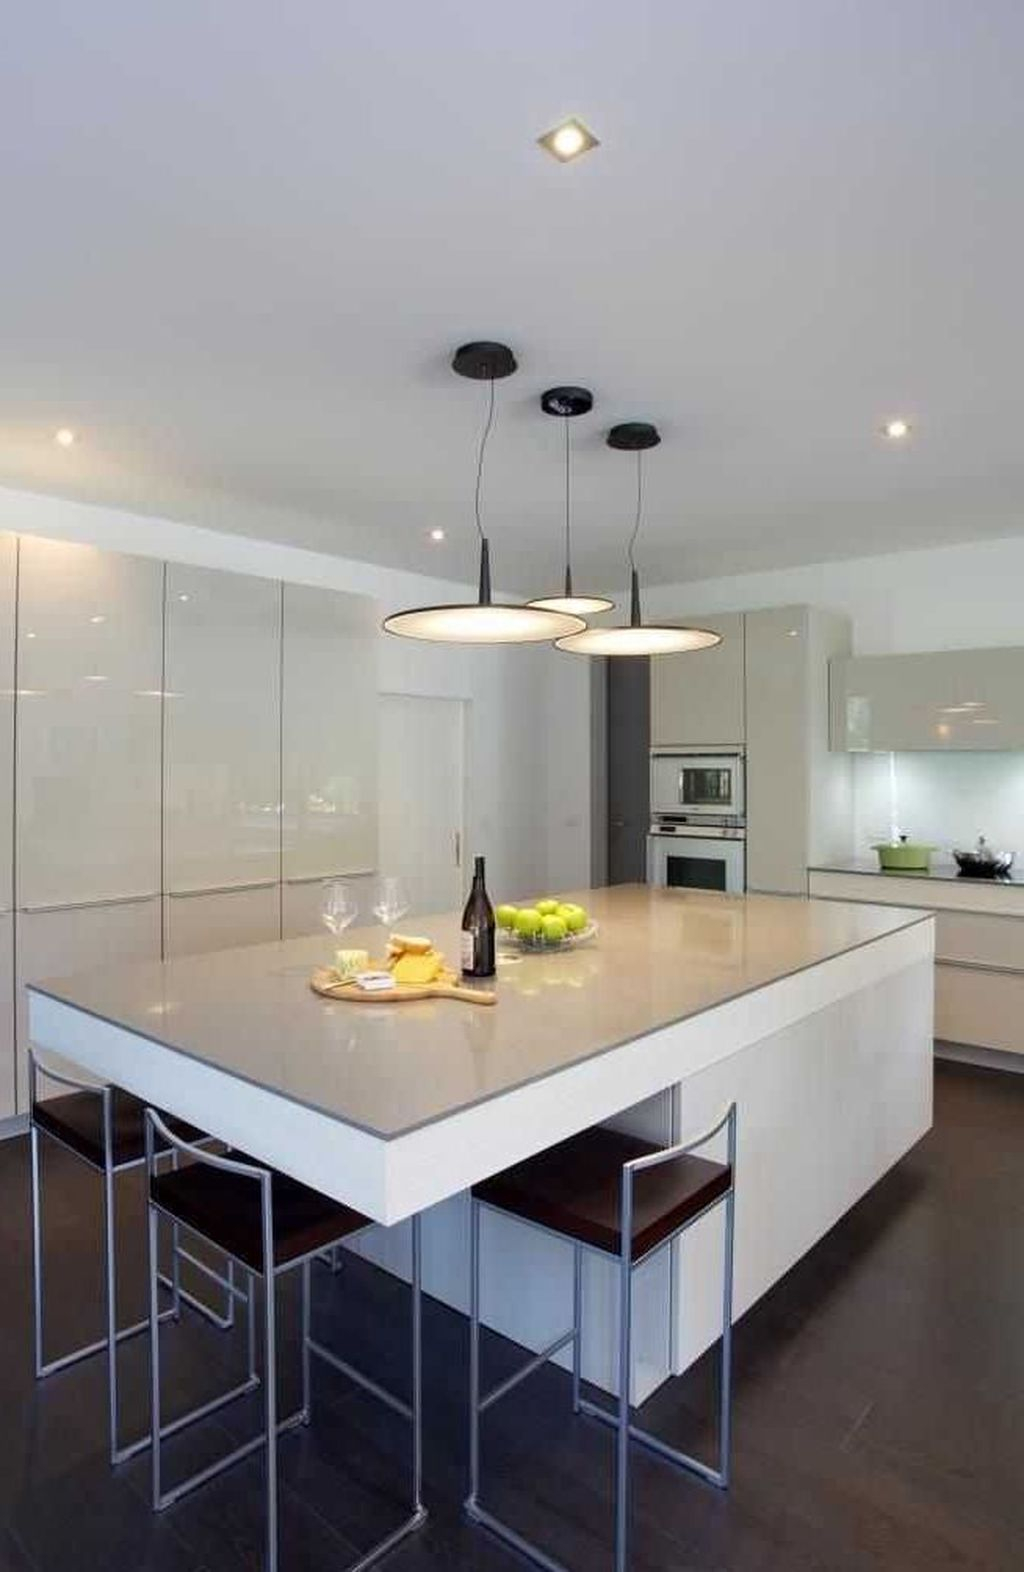 37 Modern Black Kitchens Design Ideas For Bachelors Pad To Try Asap